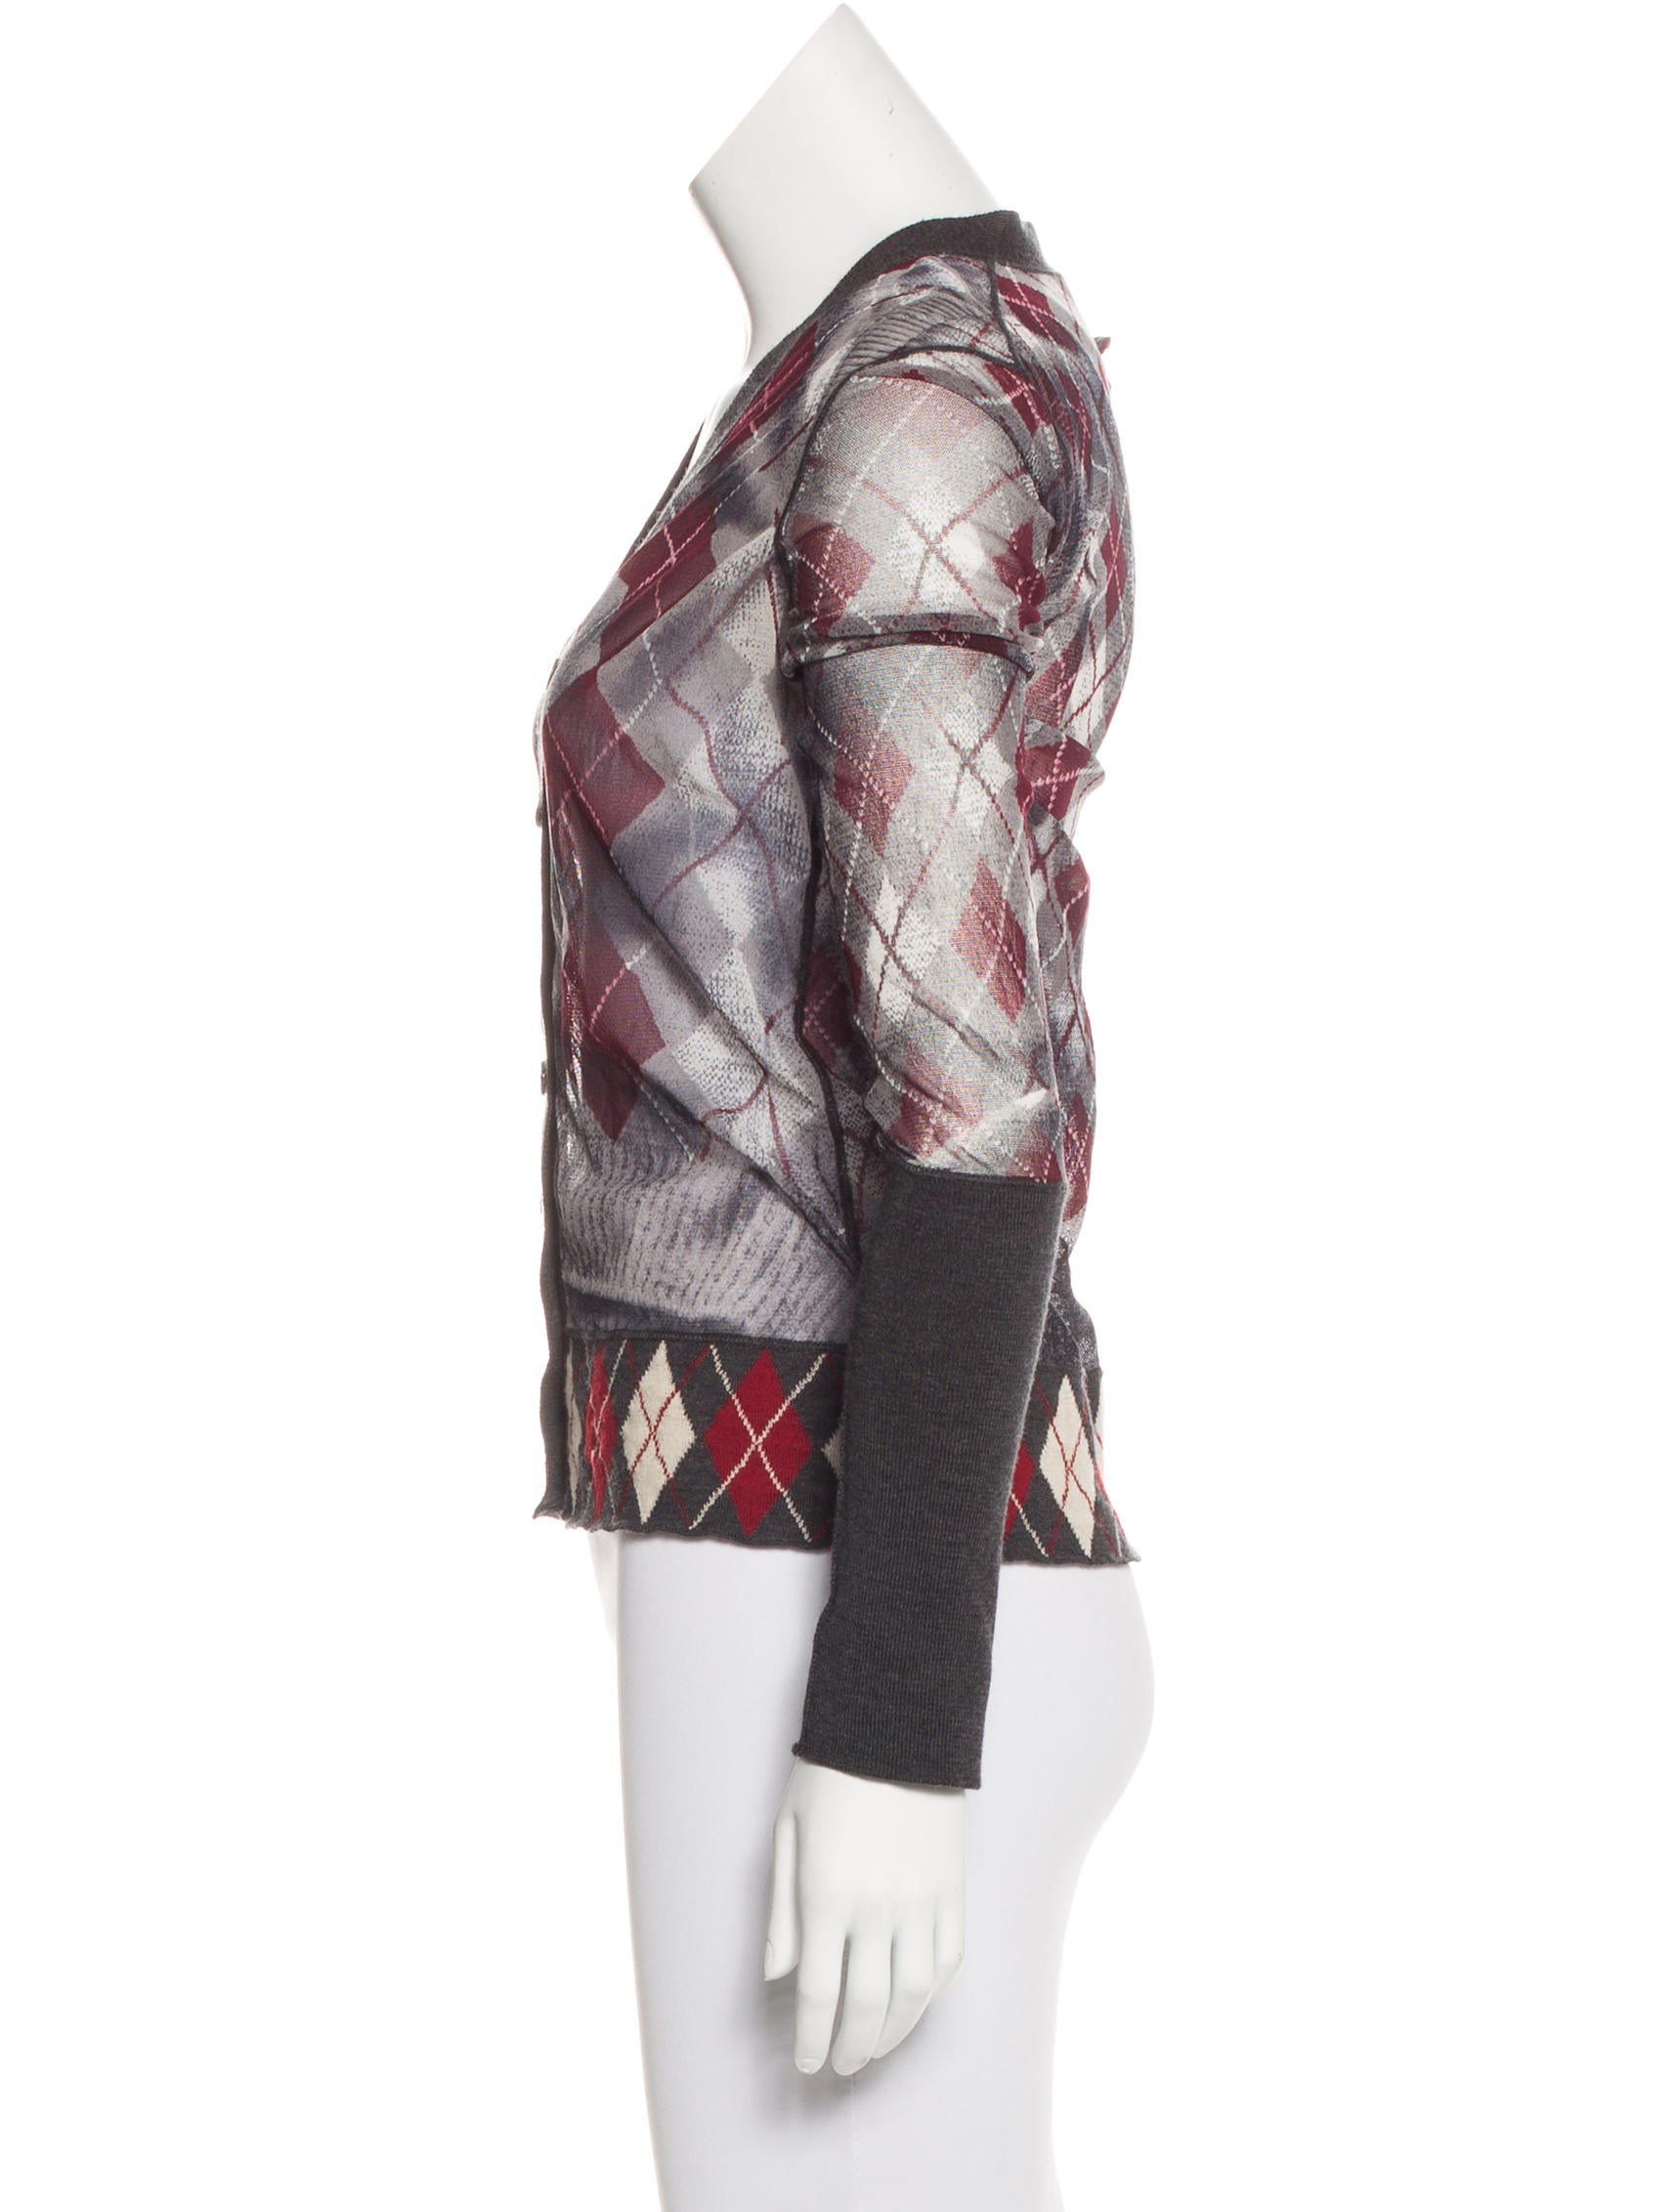 Jean paul gaultier argyle mesh cardigan clothing for Jean paul gaultier clothing